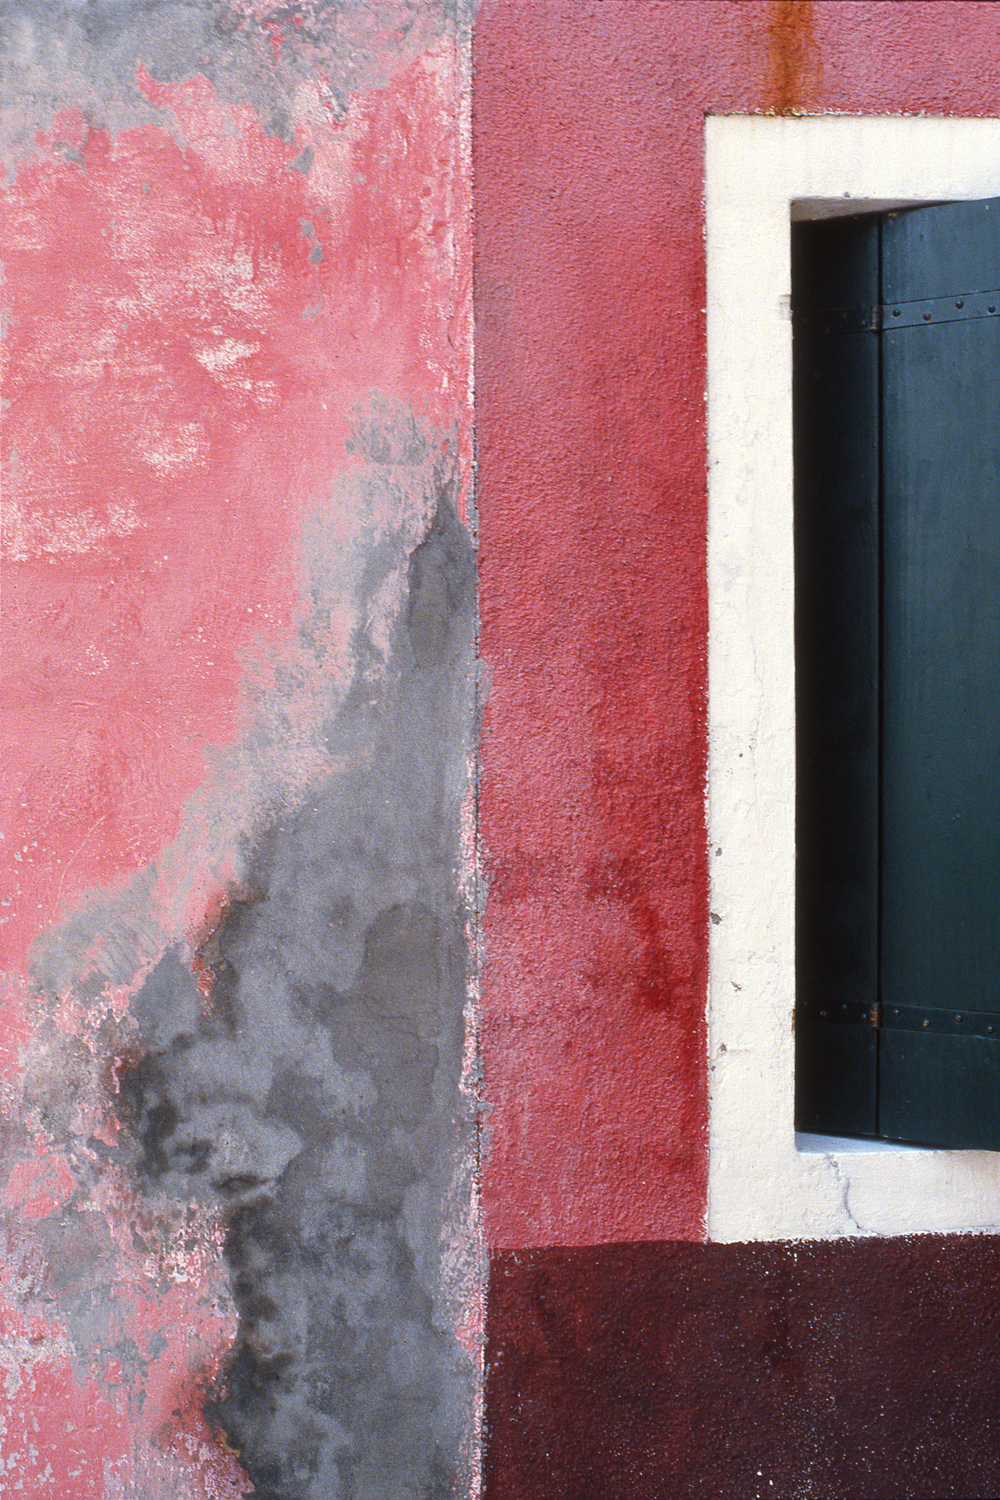 Pink and Grey Wall, Burano Italy, 1978 ,Cibachrome Print, 24 x 16cm, Edition of 10.              Exhibition:  Burano Colour Works ,Australian Centre for Photography, Sydney; Solander Gallery, Canberra; Wagga Wagga City Art Gallery,Wagga Wagga, 1979.